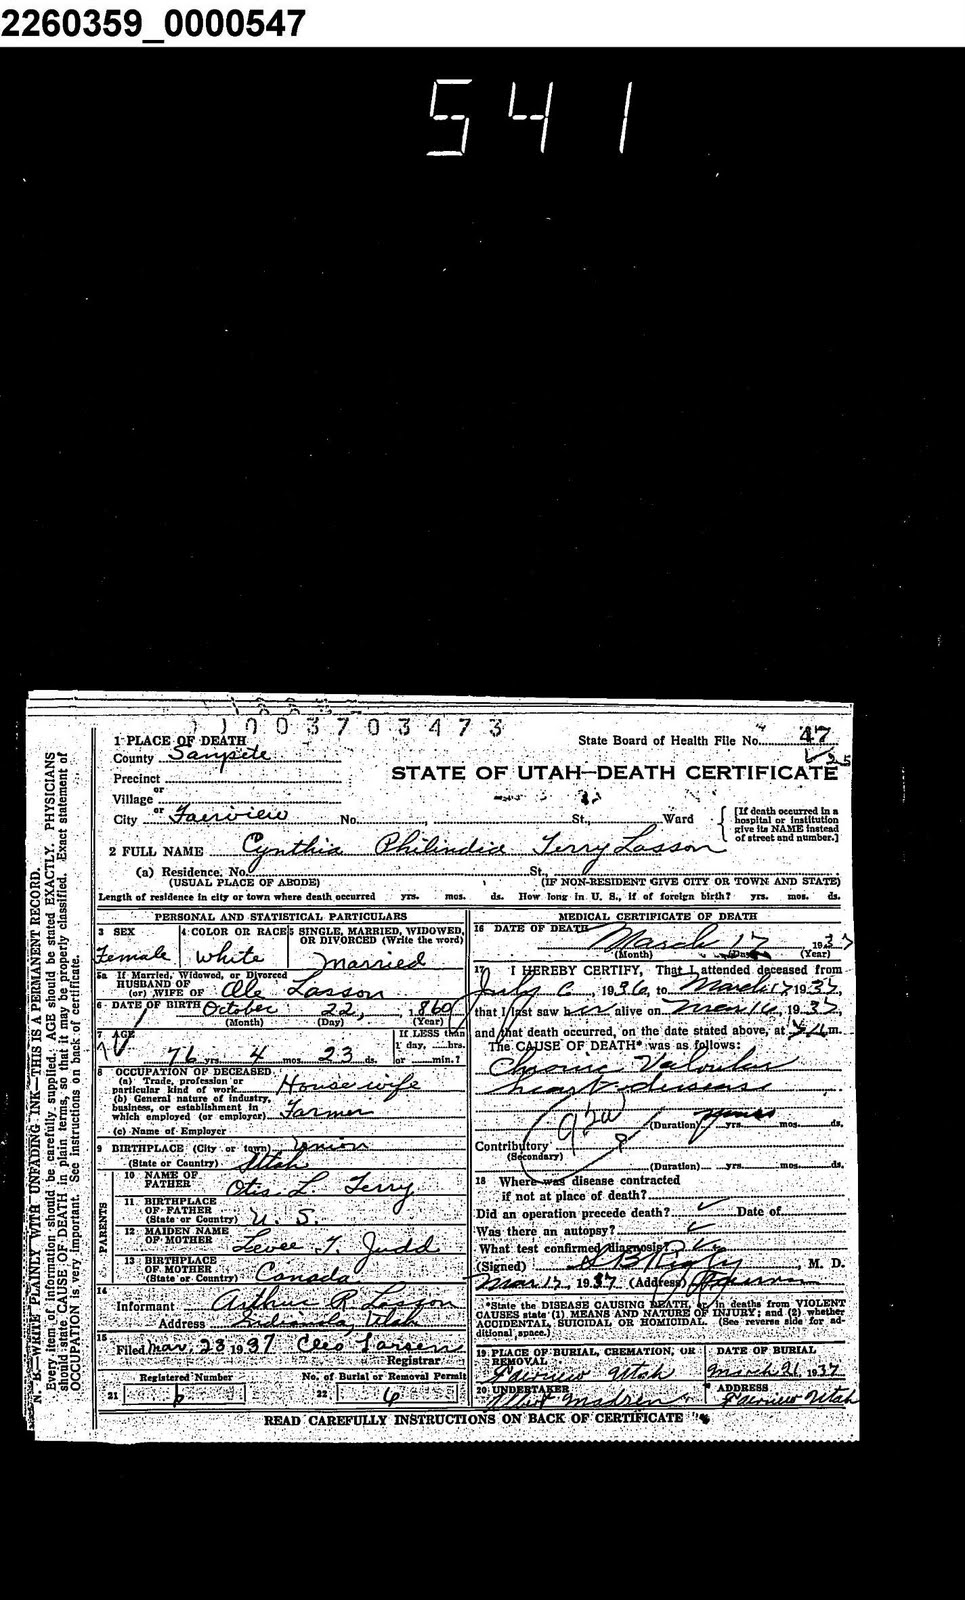 Ole Lasson Family Utah Death Certificate Cynthia Phylinda Terry Lasson